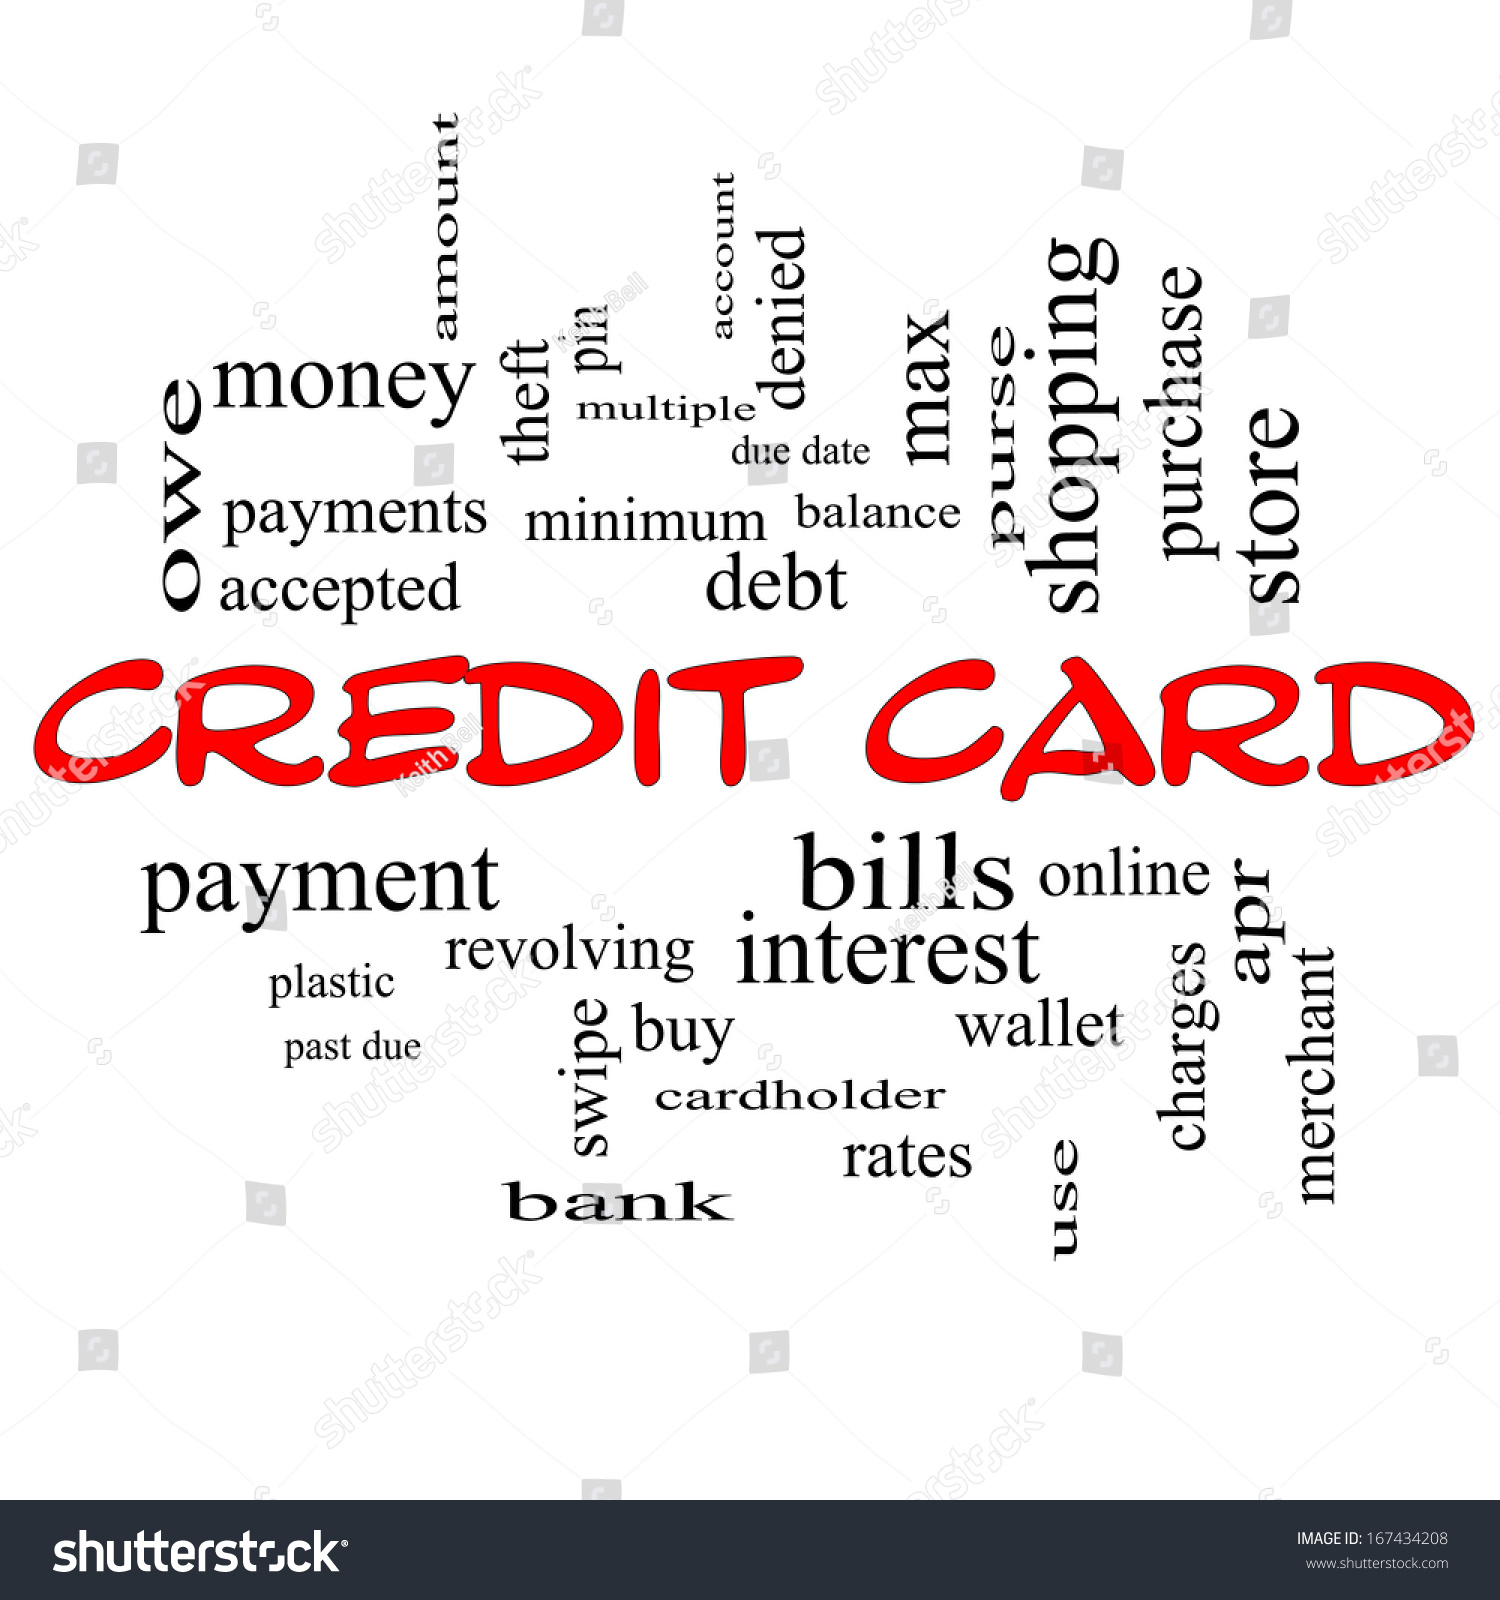 credit card terms 0 interest